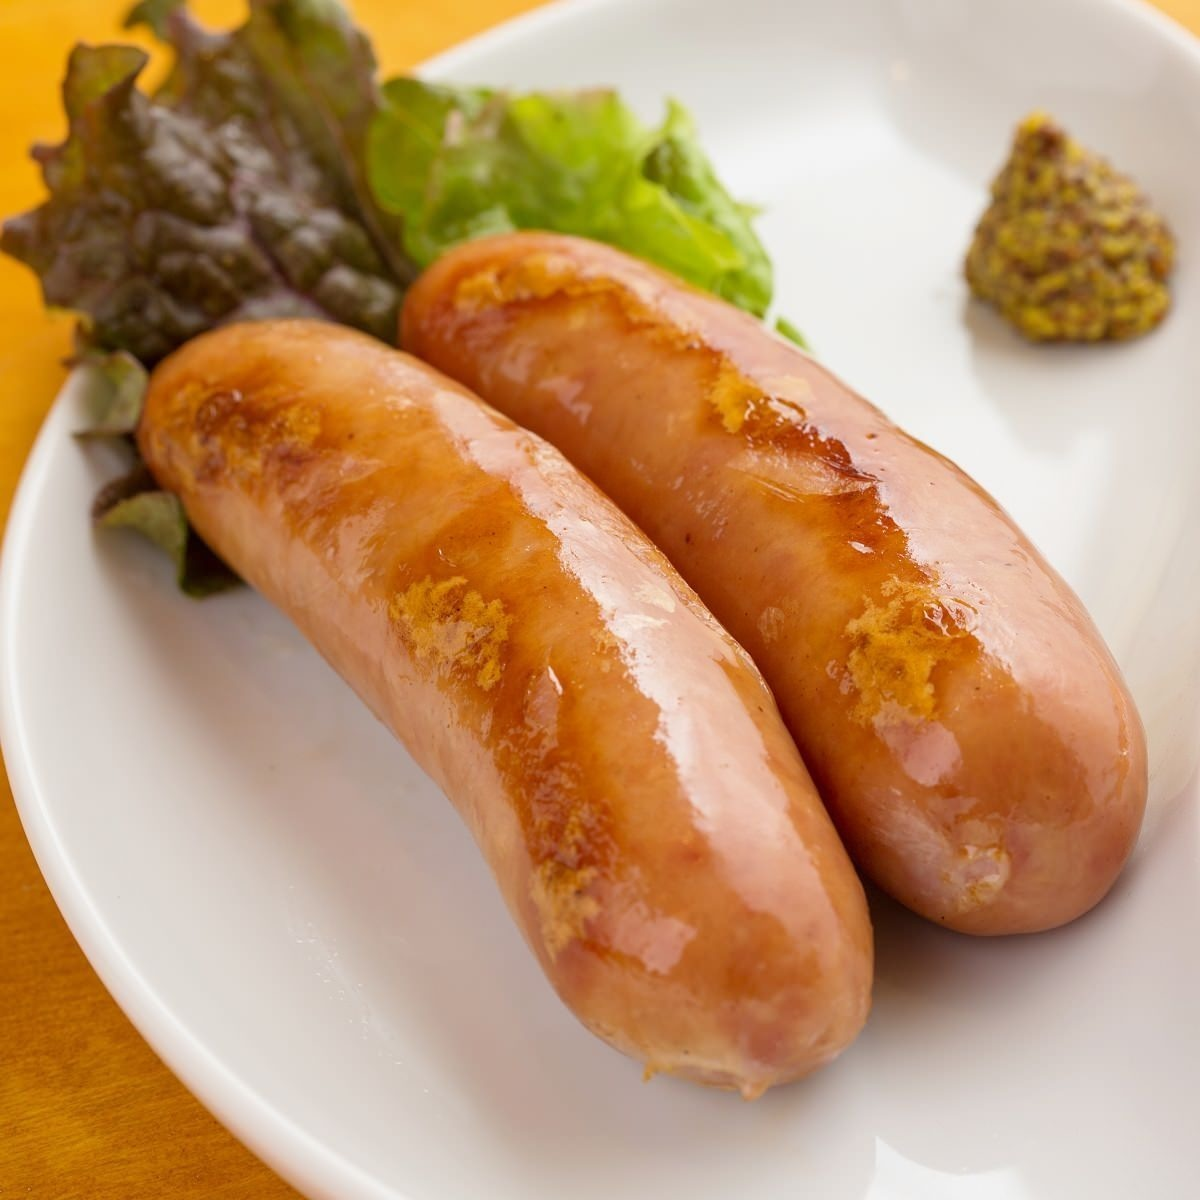 Sausage grill